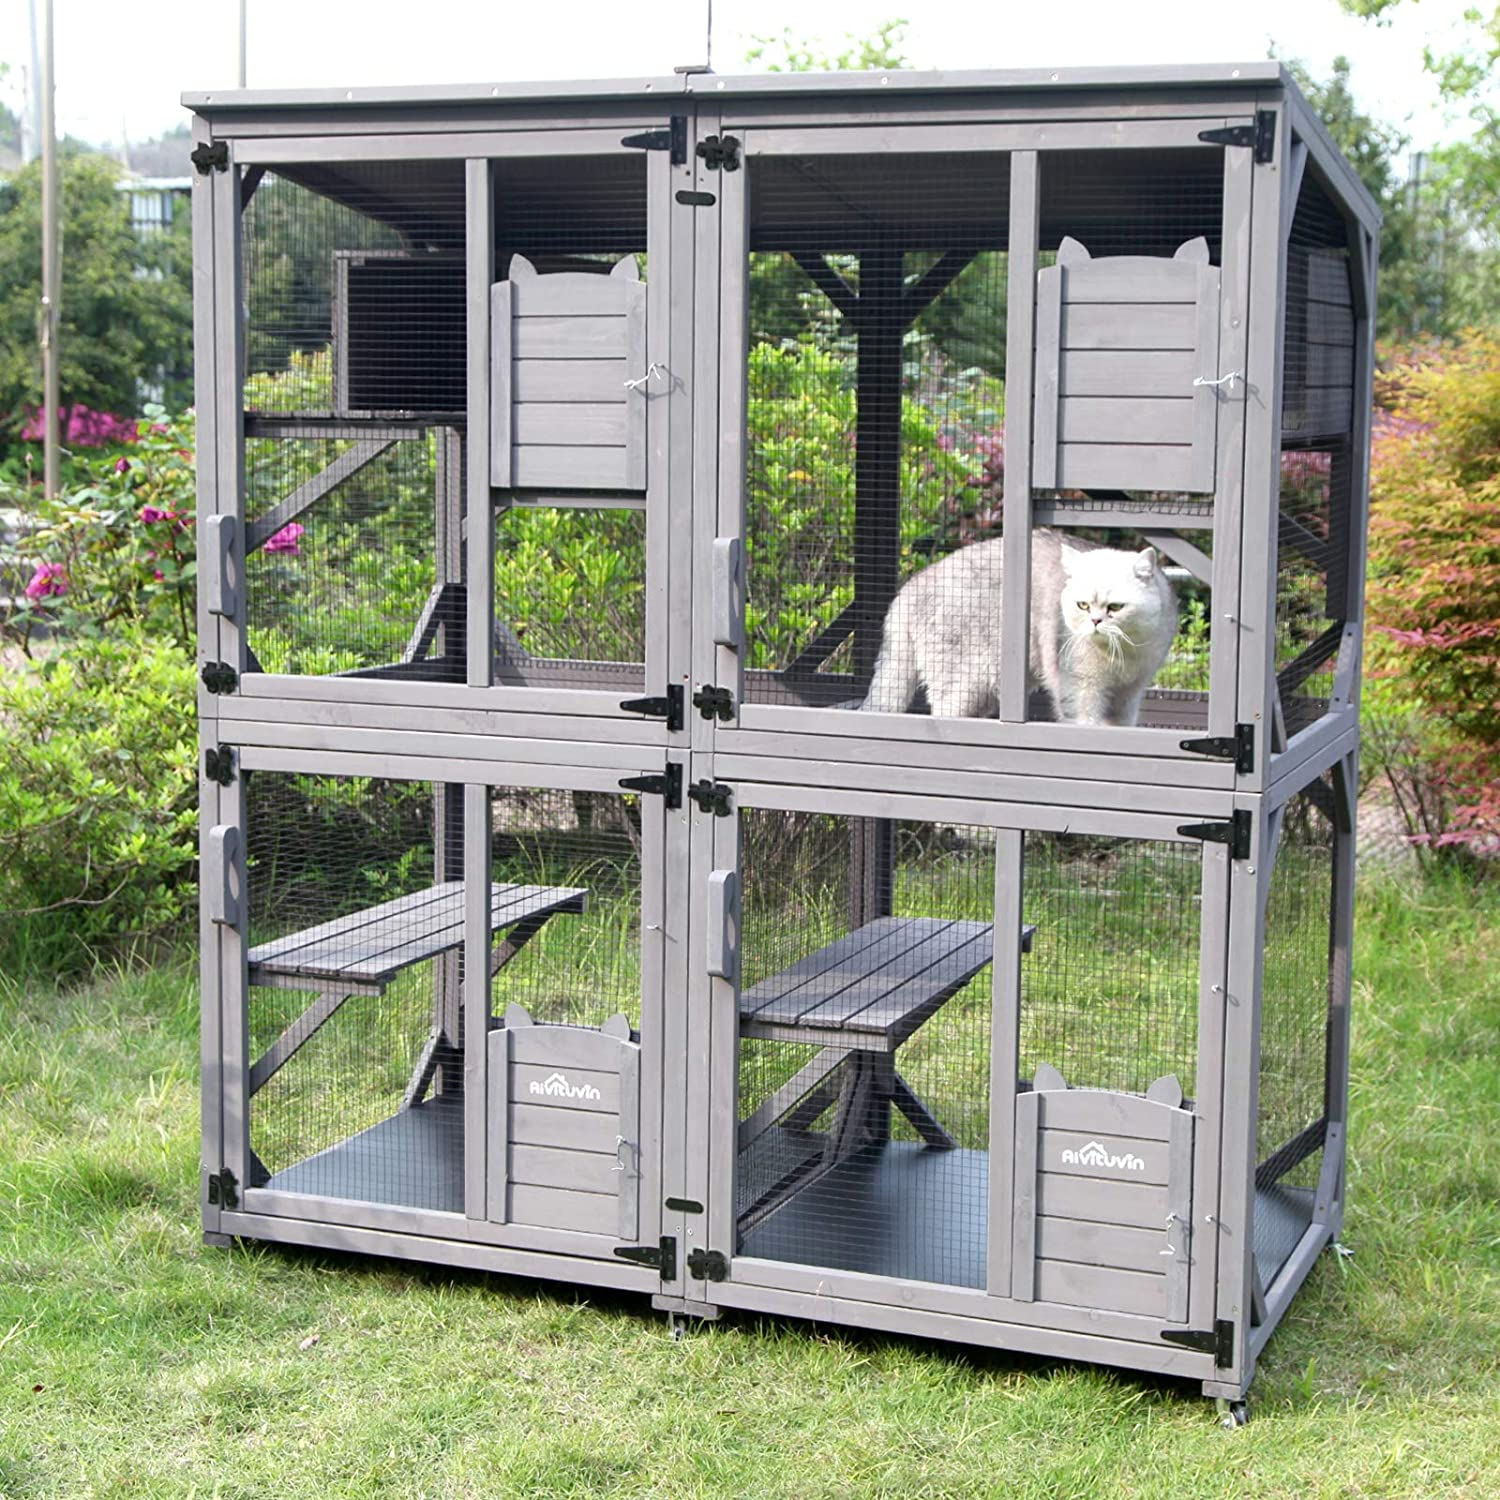 Wooden Cat House Outdoor And Indoor Run Large Cat Enclosure On Wheels 70 9 Upgraded Version Kennel Cage With Reinforcement Wooden Strip 2 Sets Include Kitchen Dining